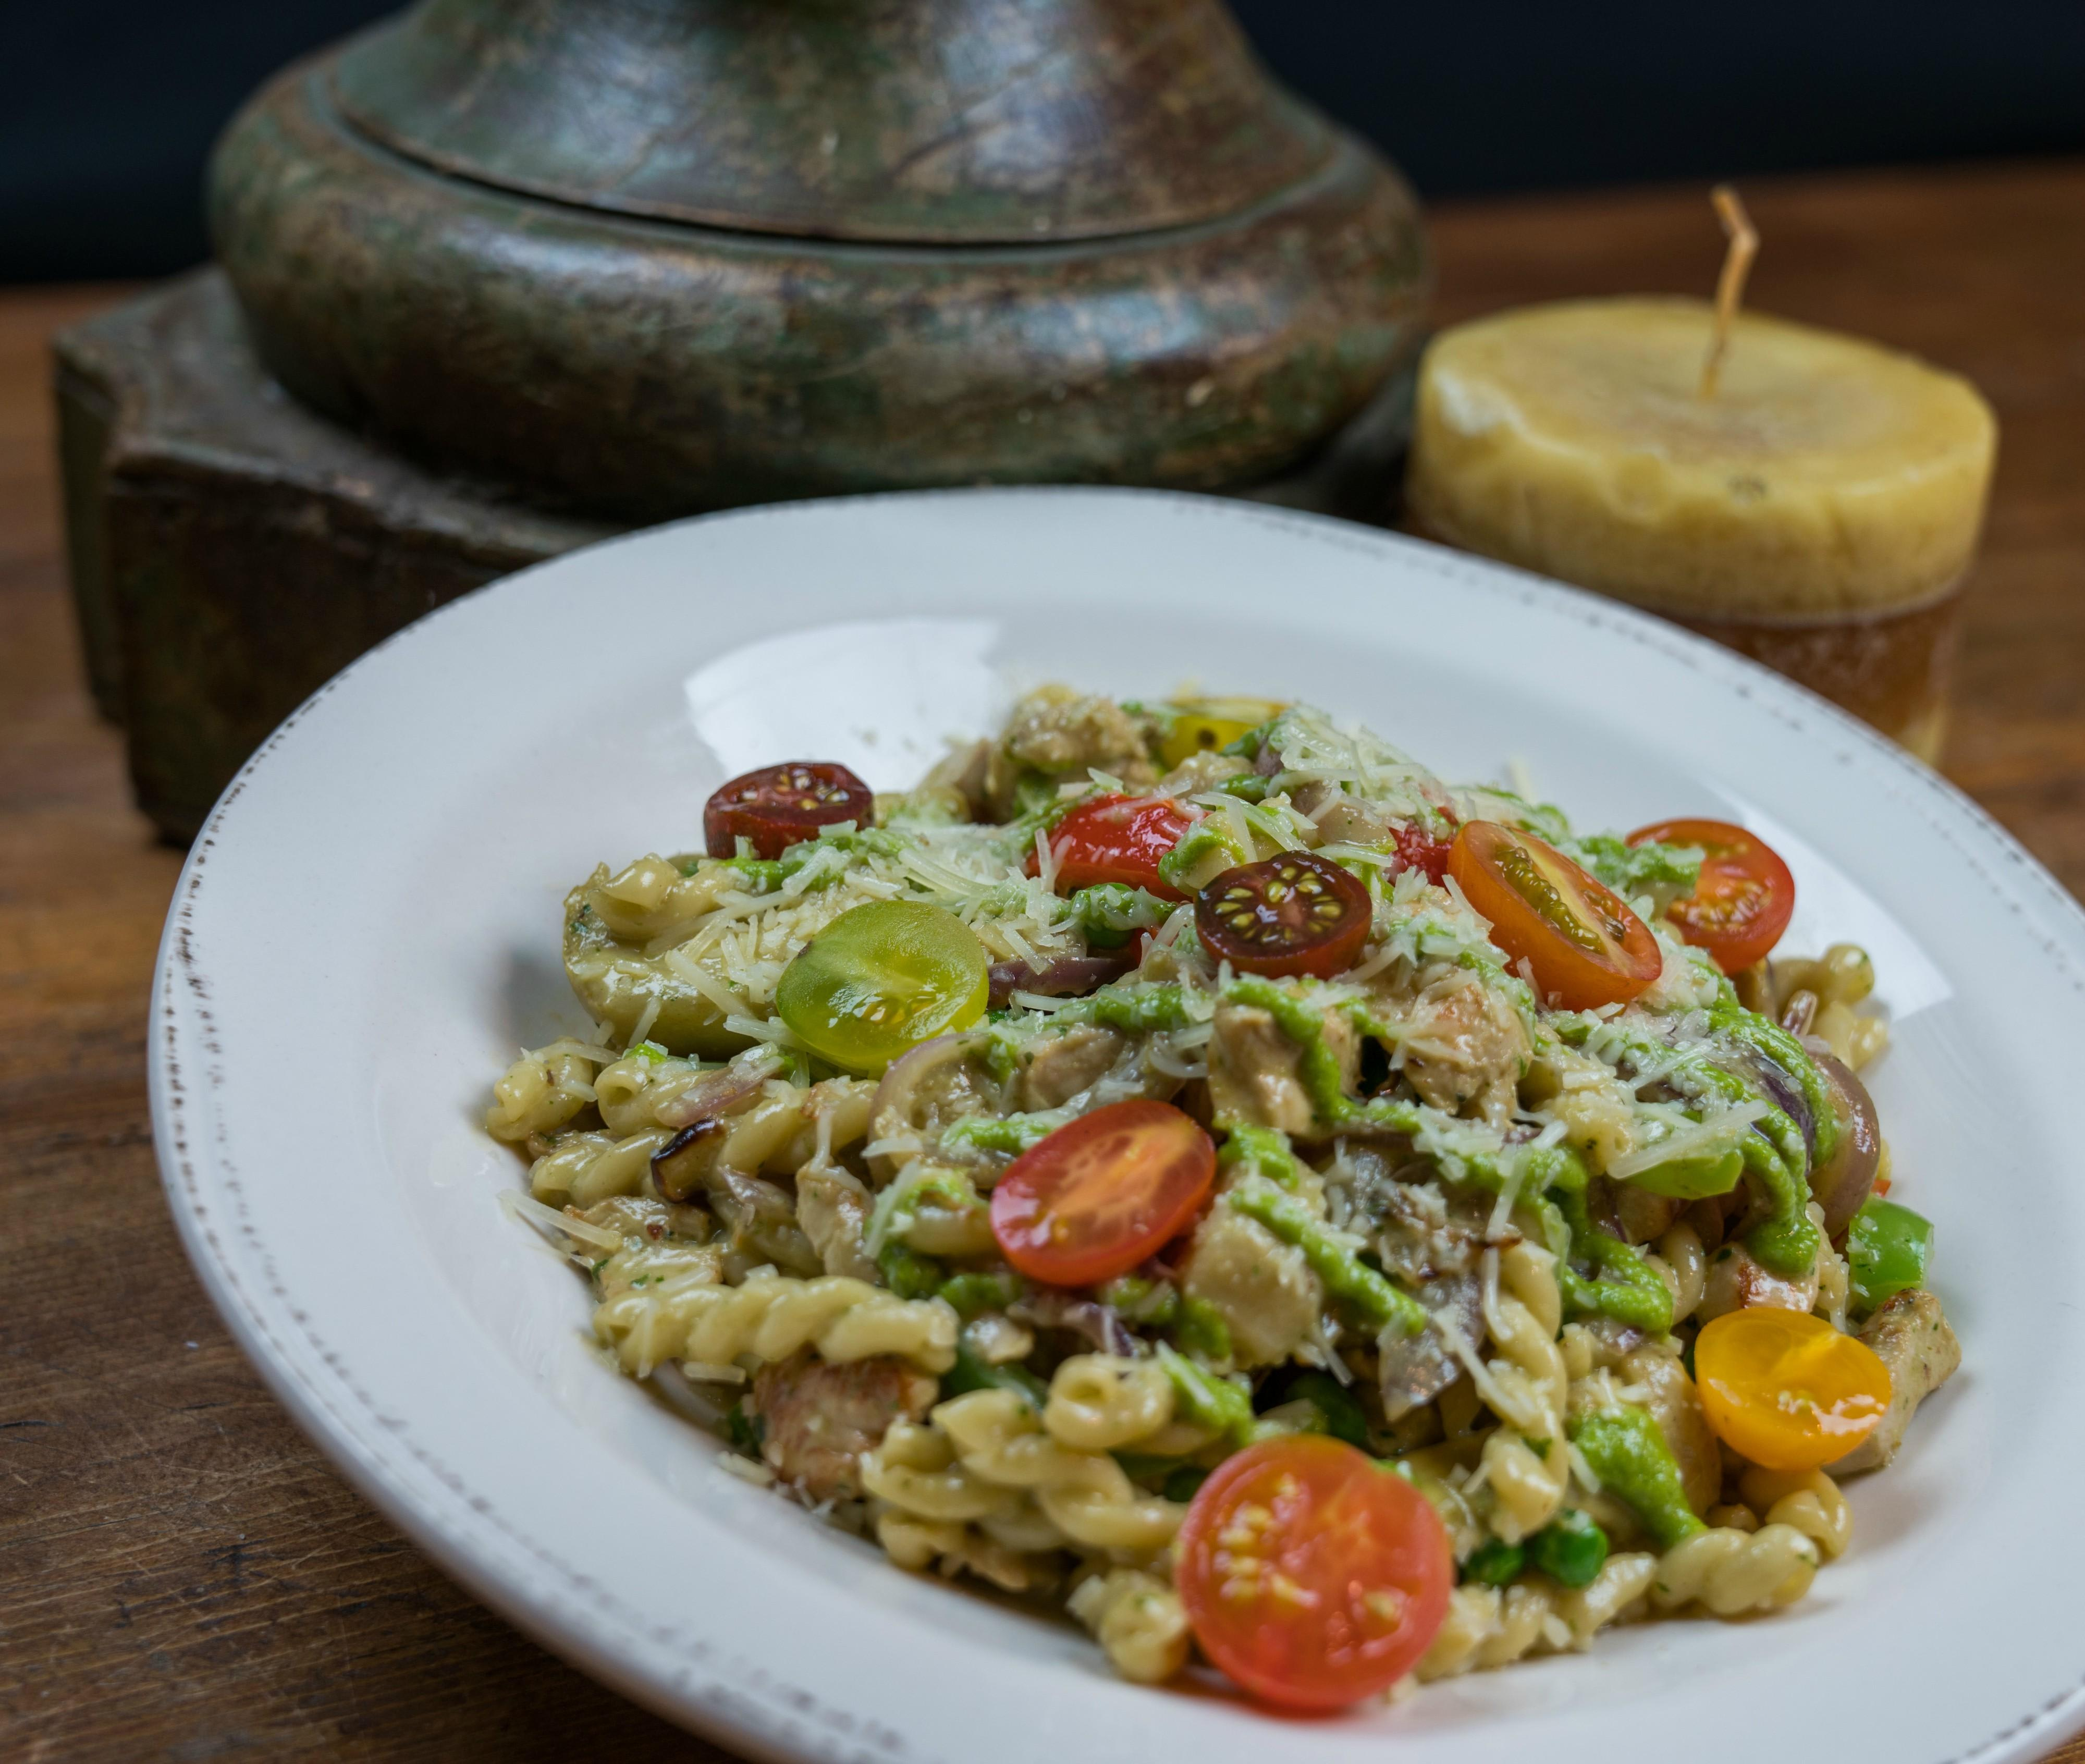 Gemelli Pasta Garlic chicken, artichokes, red onions, peppers, peas, heirloom tomatoes, basil cream & fresh pesto at Tonto Bar & Grill